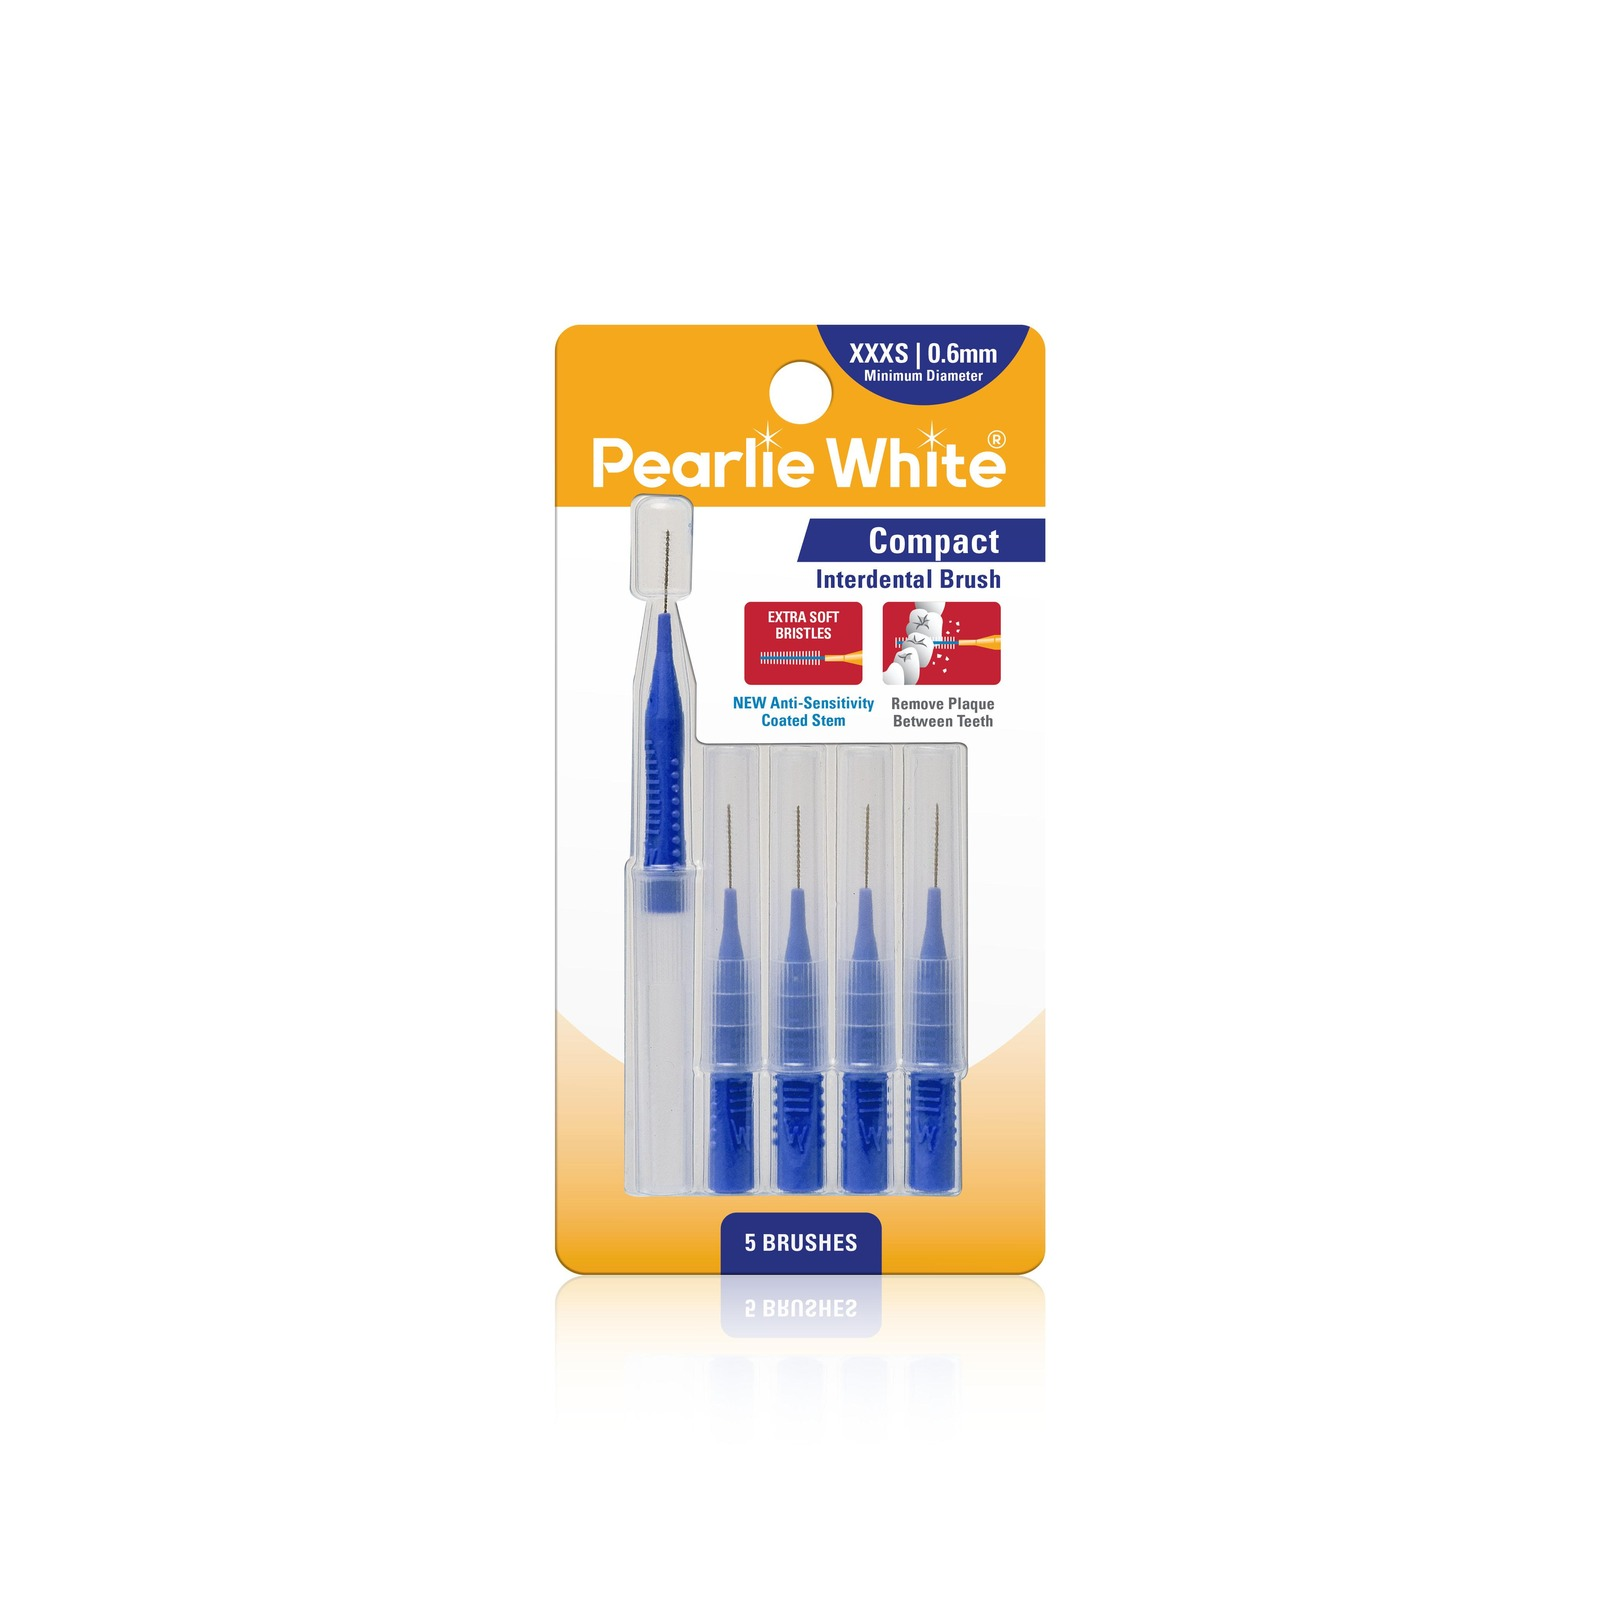 Pearlie White Compact Interdental Brushes XXXS 0.6mm